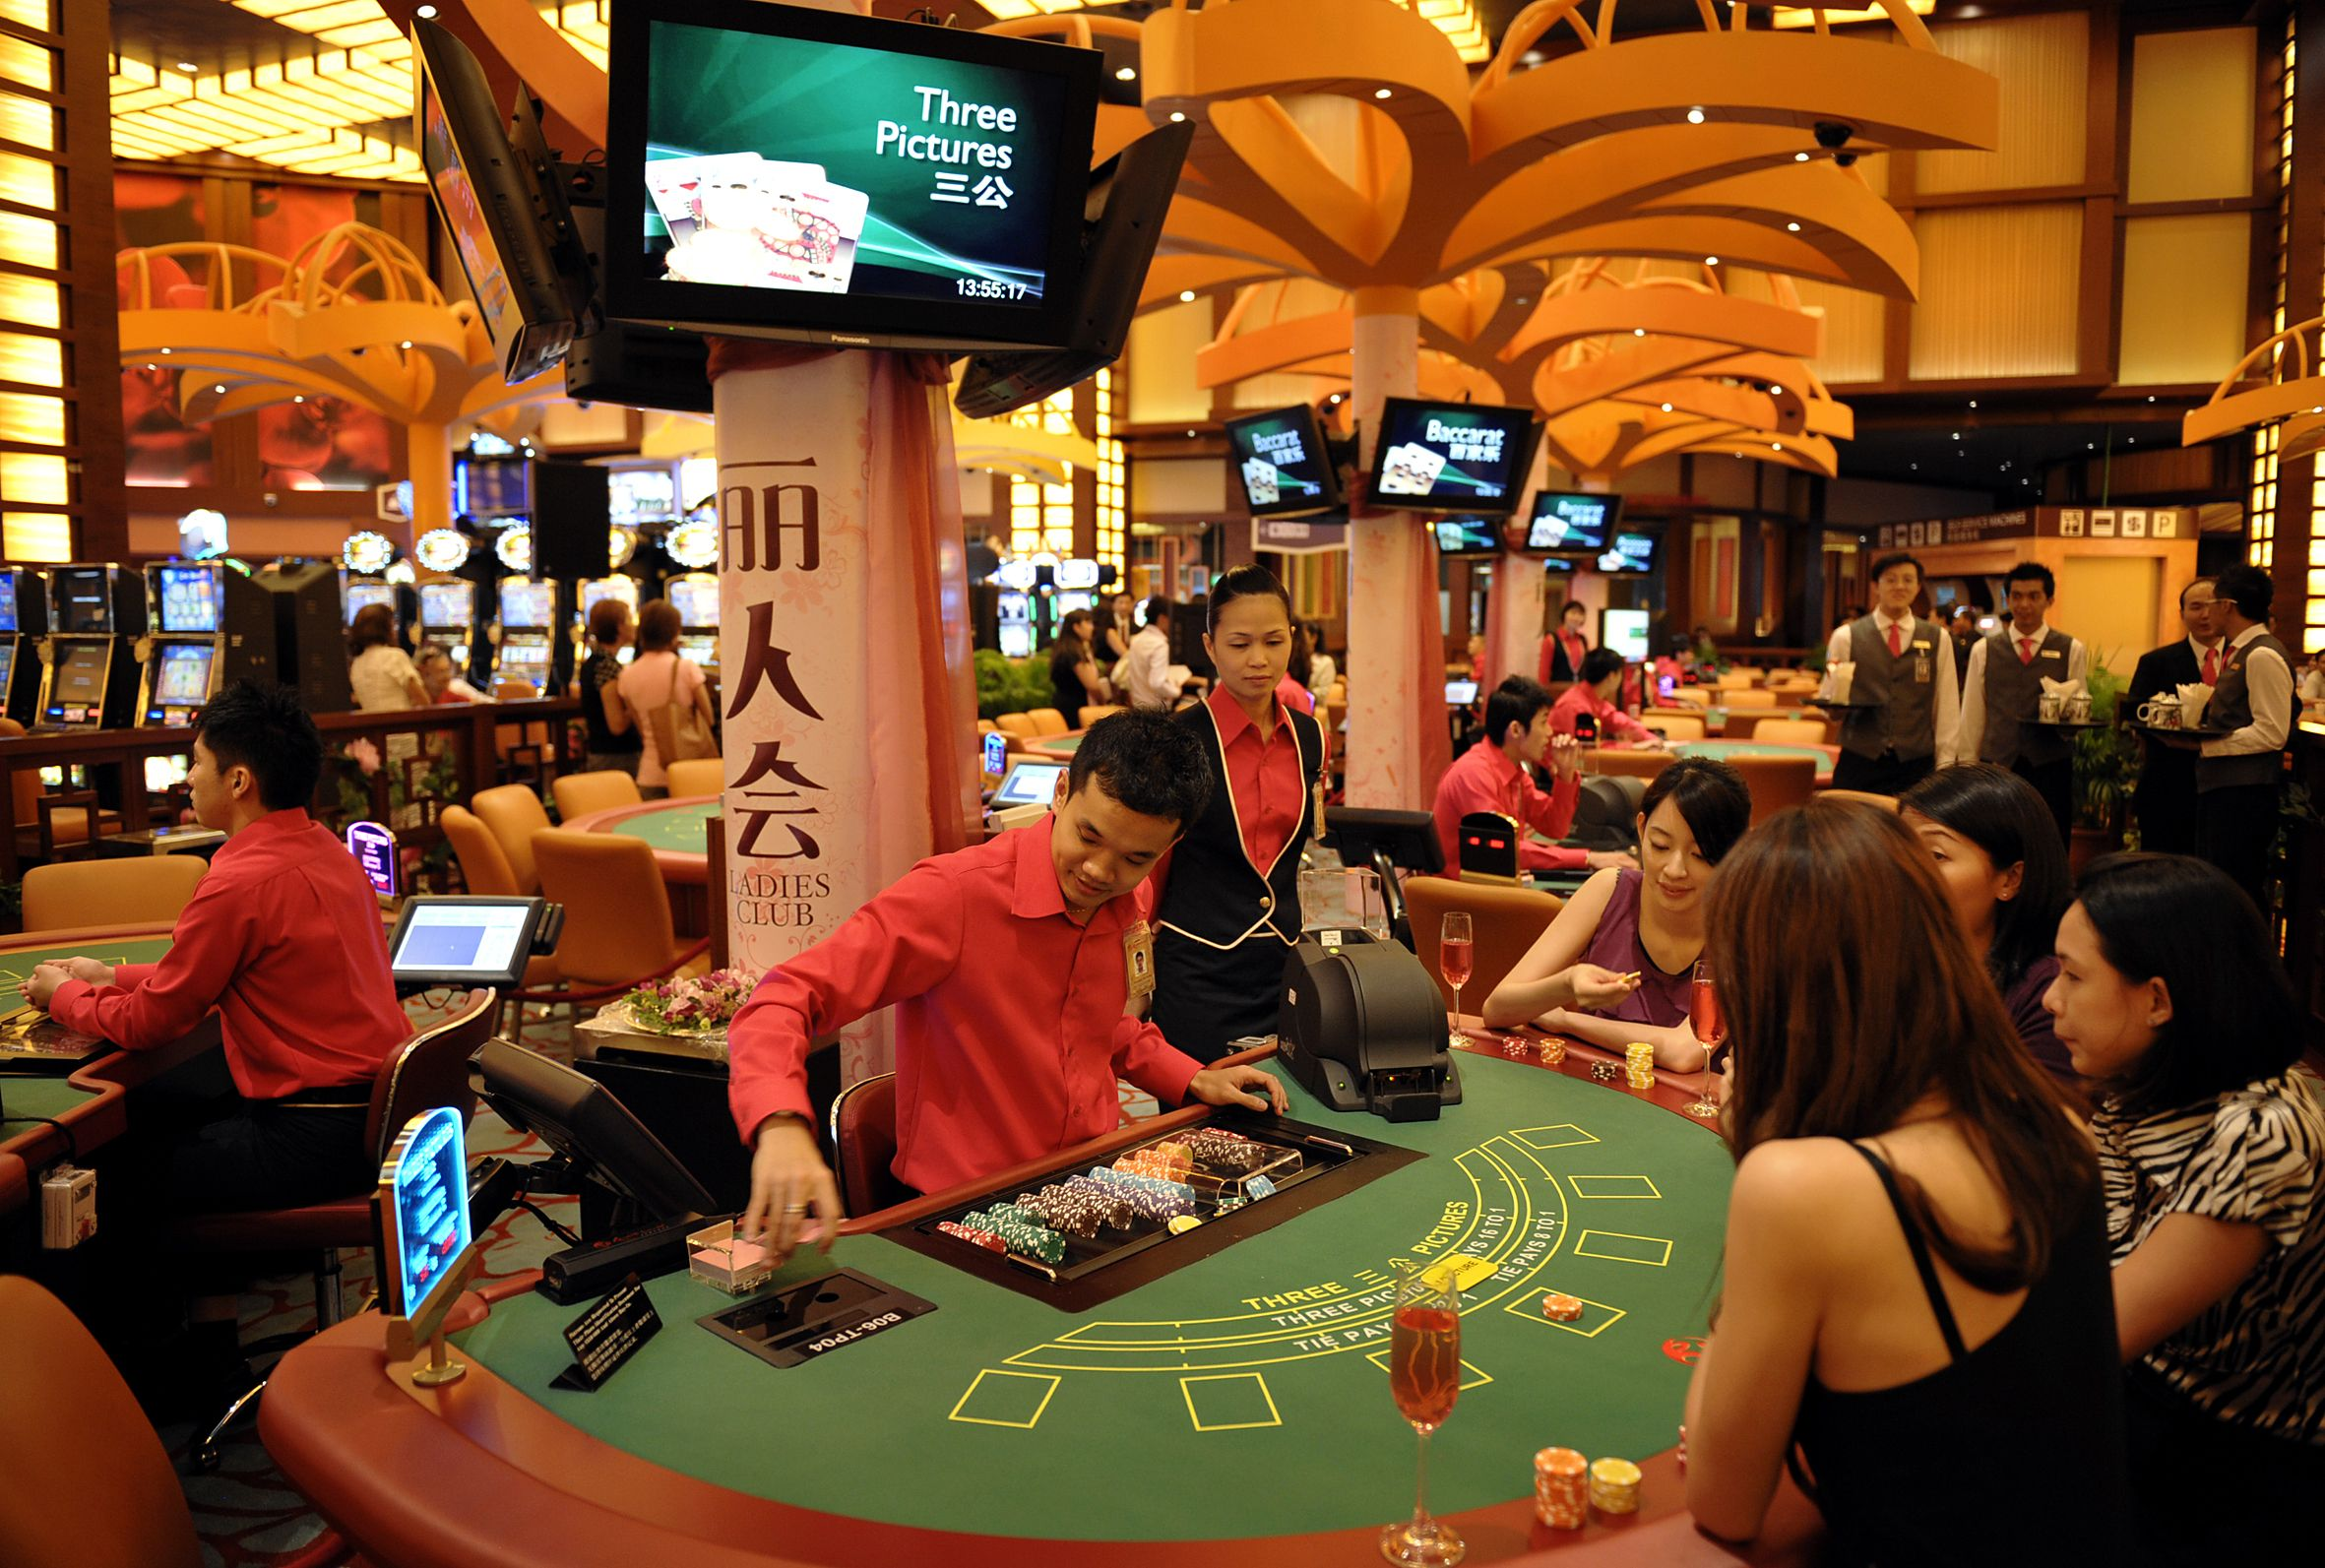 Gemini cruise singapore casino which party members russian roulette lisa